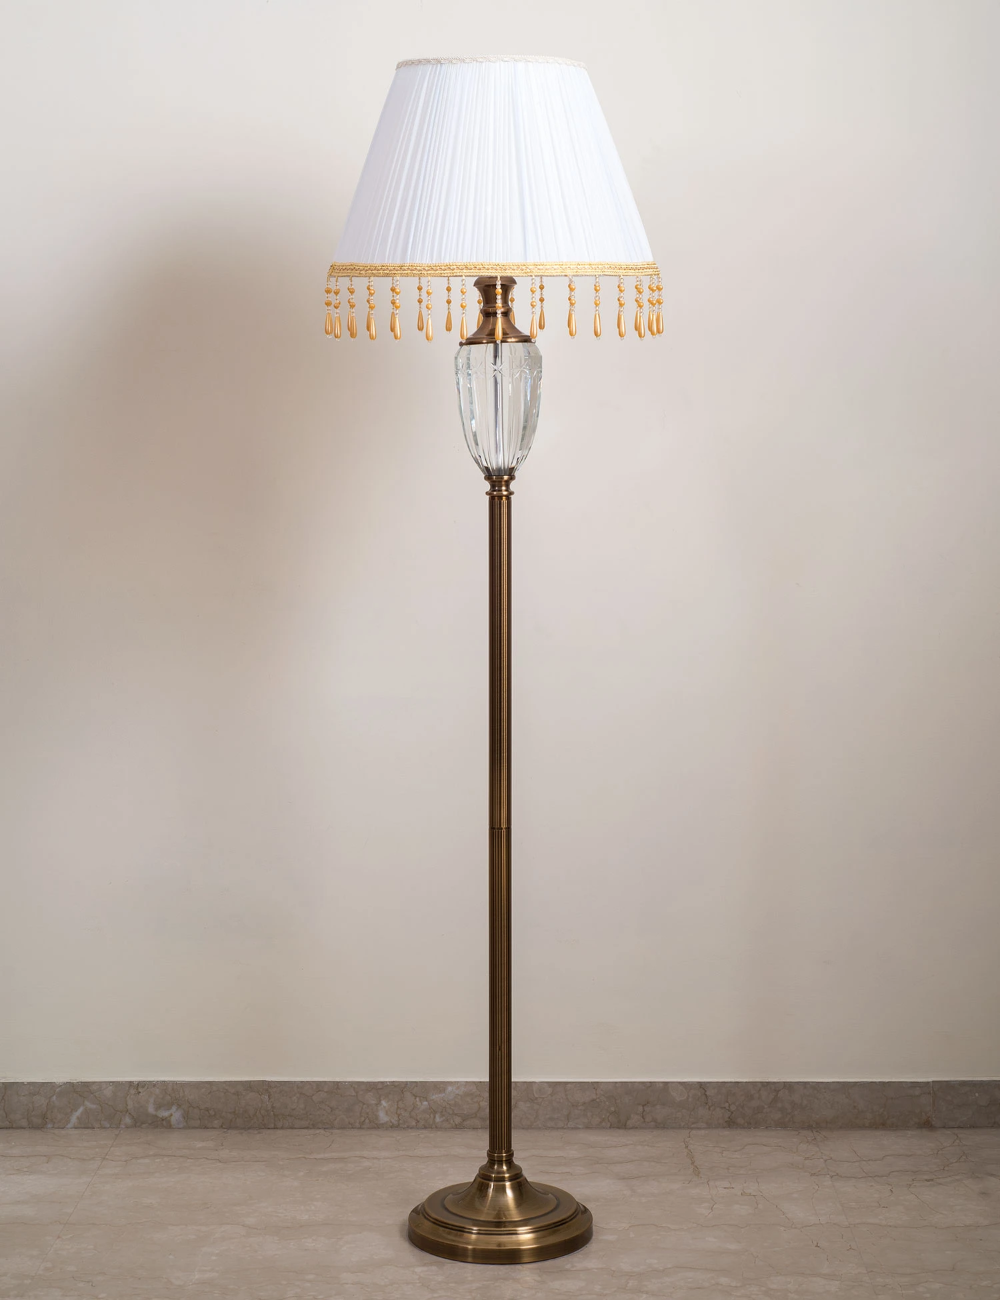 Buy Online Metal With Brass Finish Crystal Floor Lamps With Cloth Shade In India Thedecorkart In 2020 Crystal Floor Lamp Floor Lamp Crystal Floor